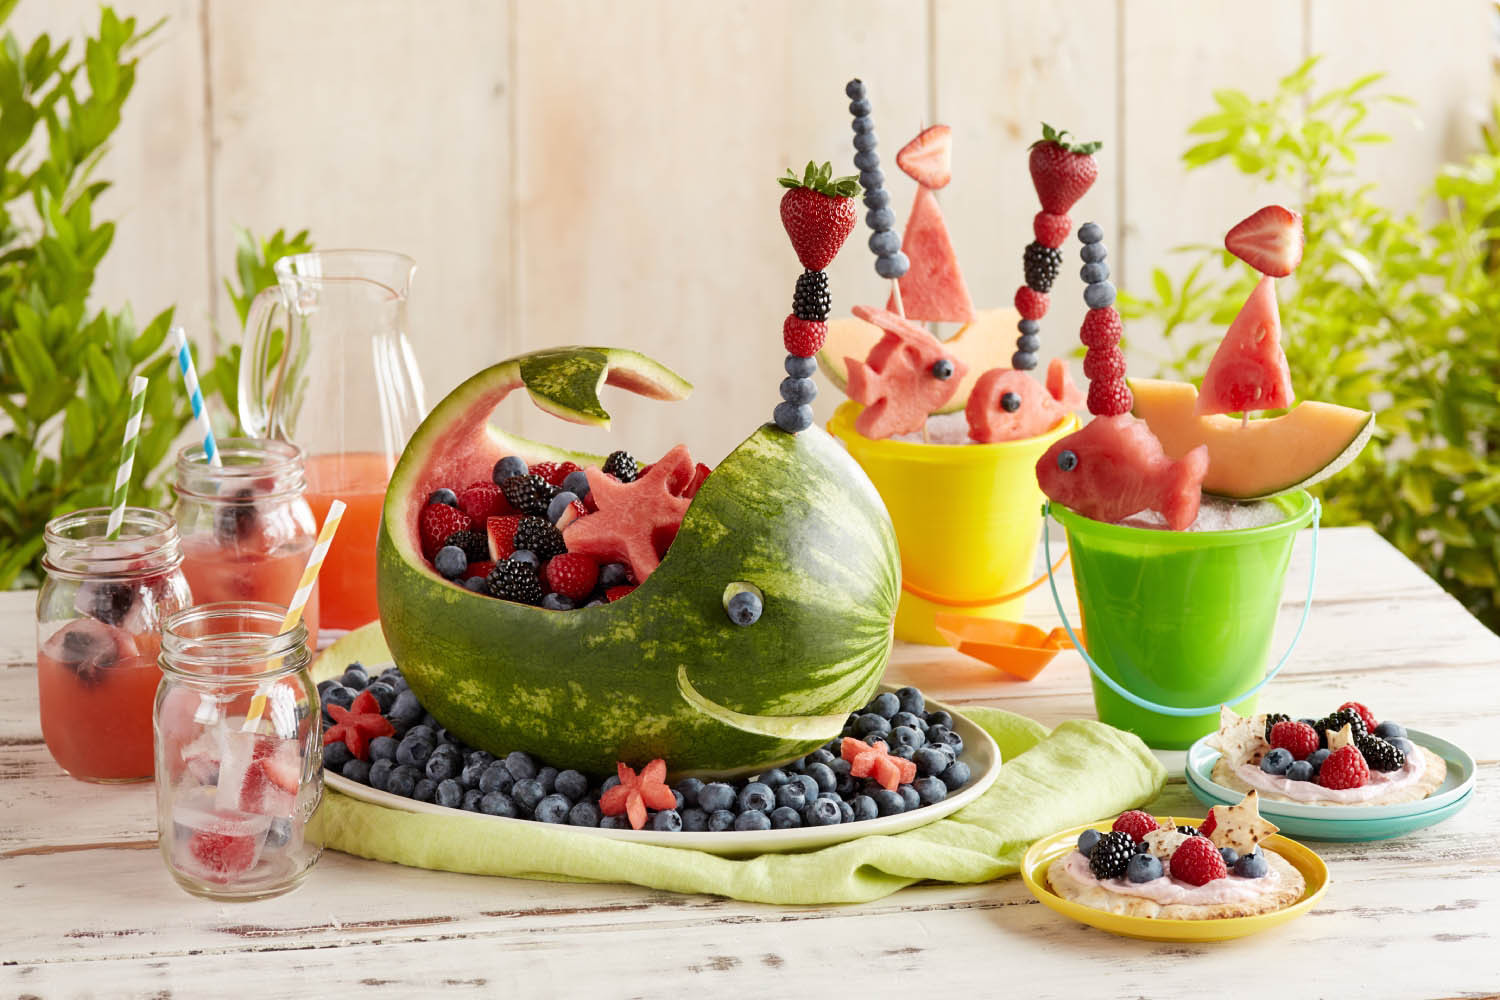 Beach Food Ideas For Party  Splash into Summer with a Berry Beach Party